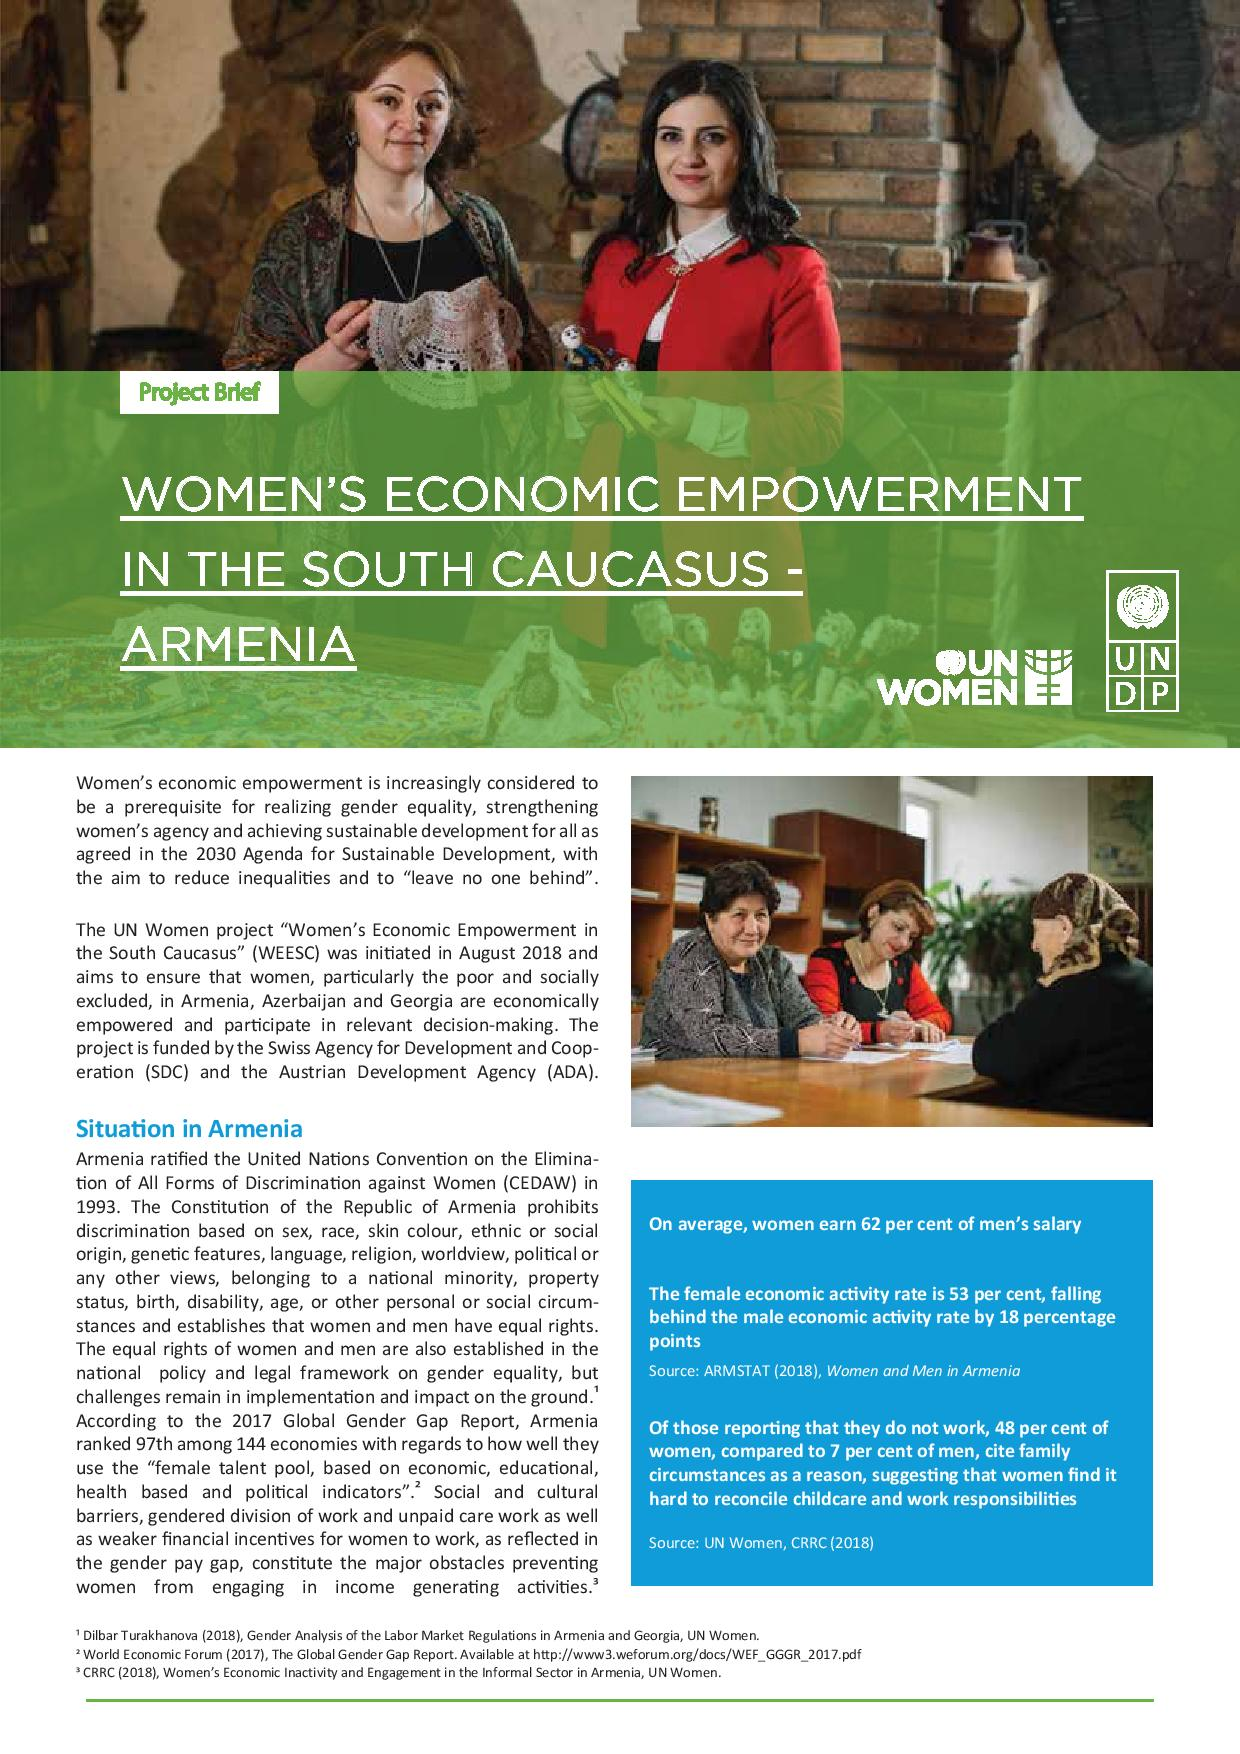 Women's Economic Empowerment in the South Caucasus - Armenia